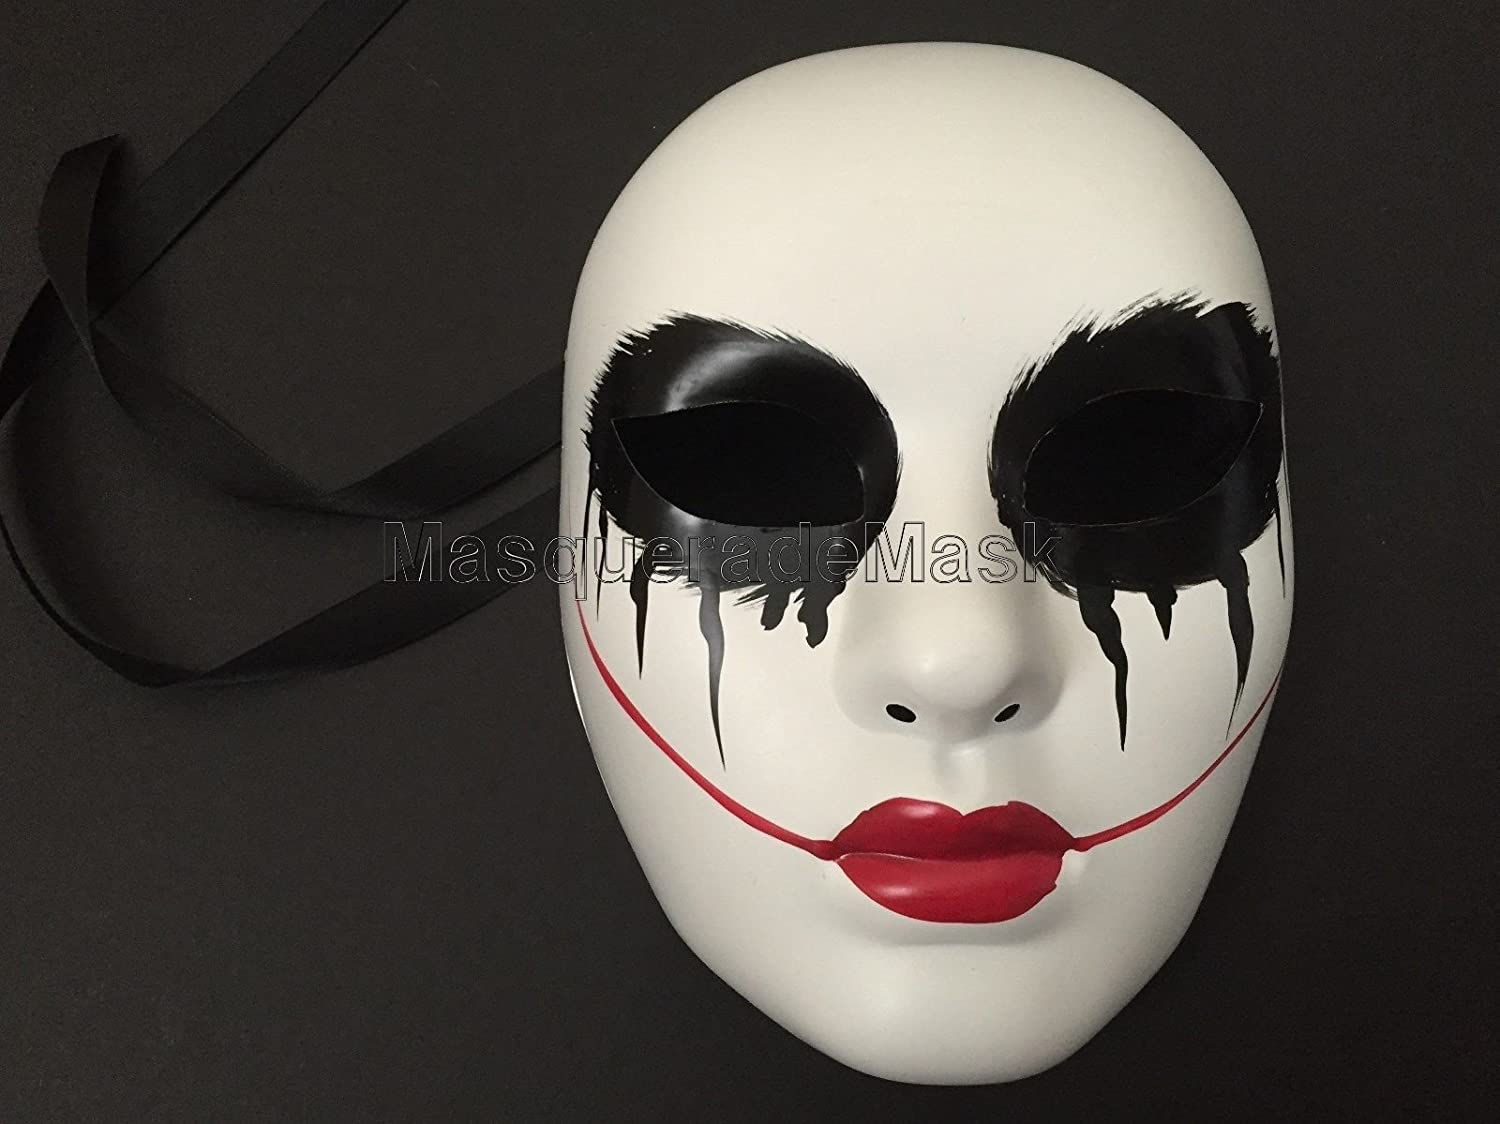 Amazon.com: The purge mask Anarchy Purge movie Red lips women mask horror purge masked men Halloween Costume Party: Home & Kitchen